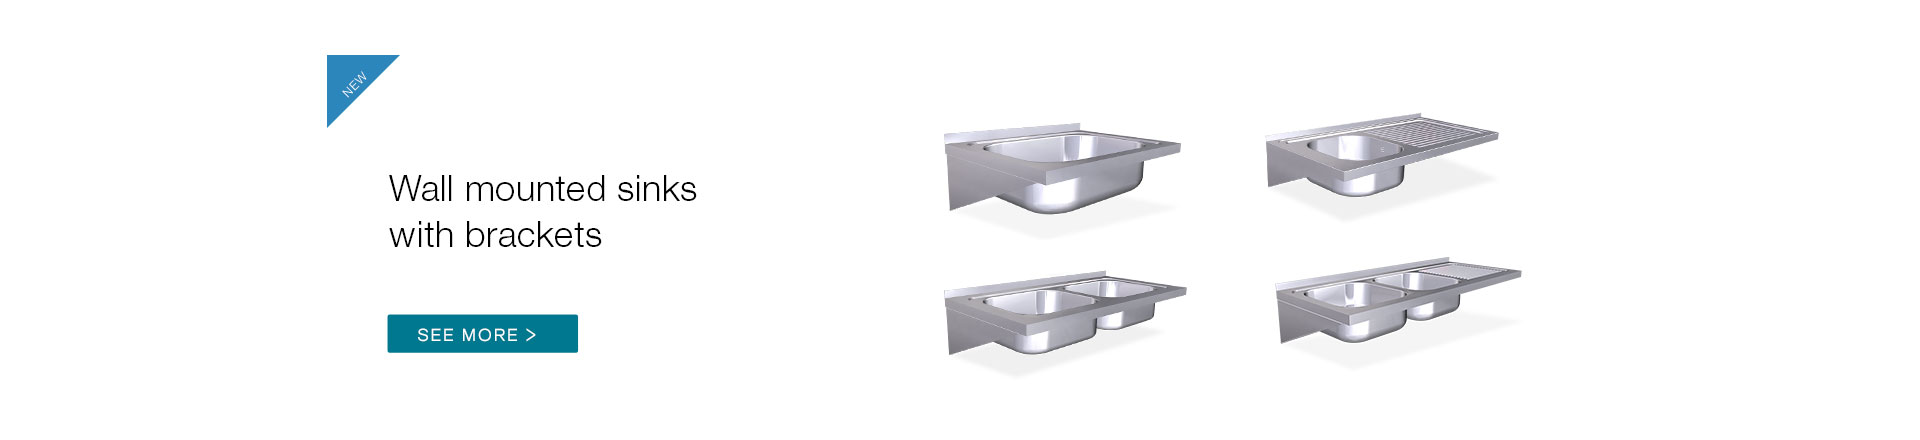 Wall mounted sinks with brackets